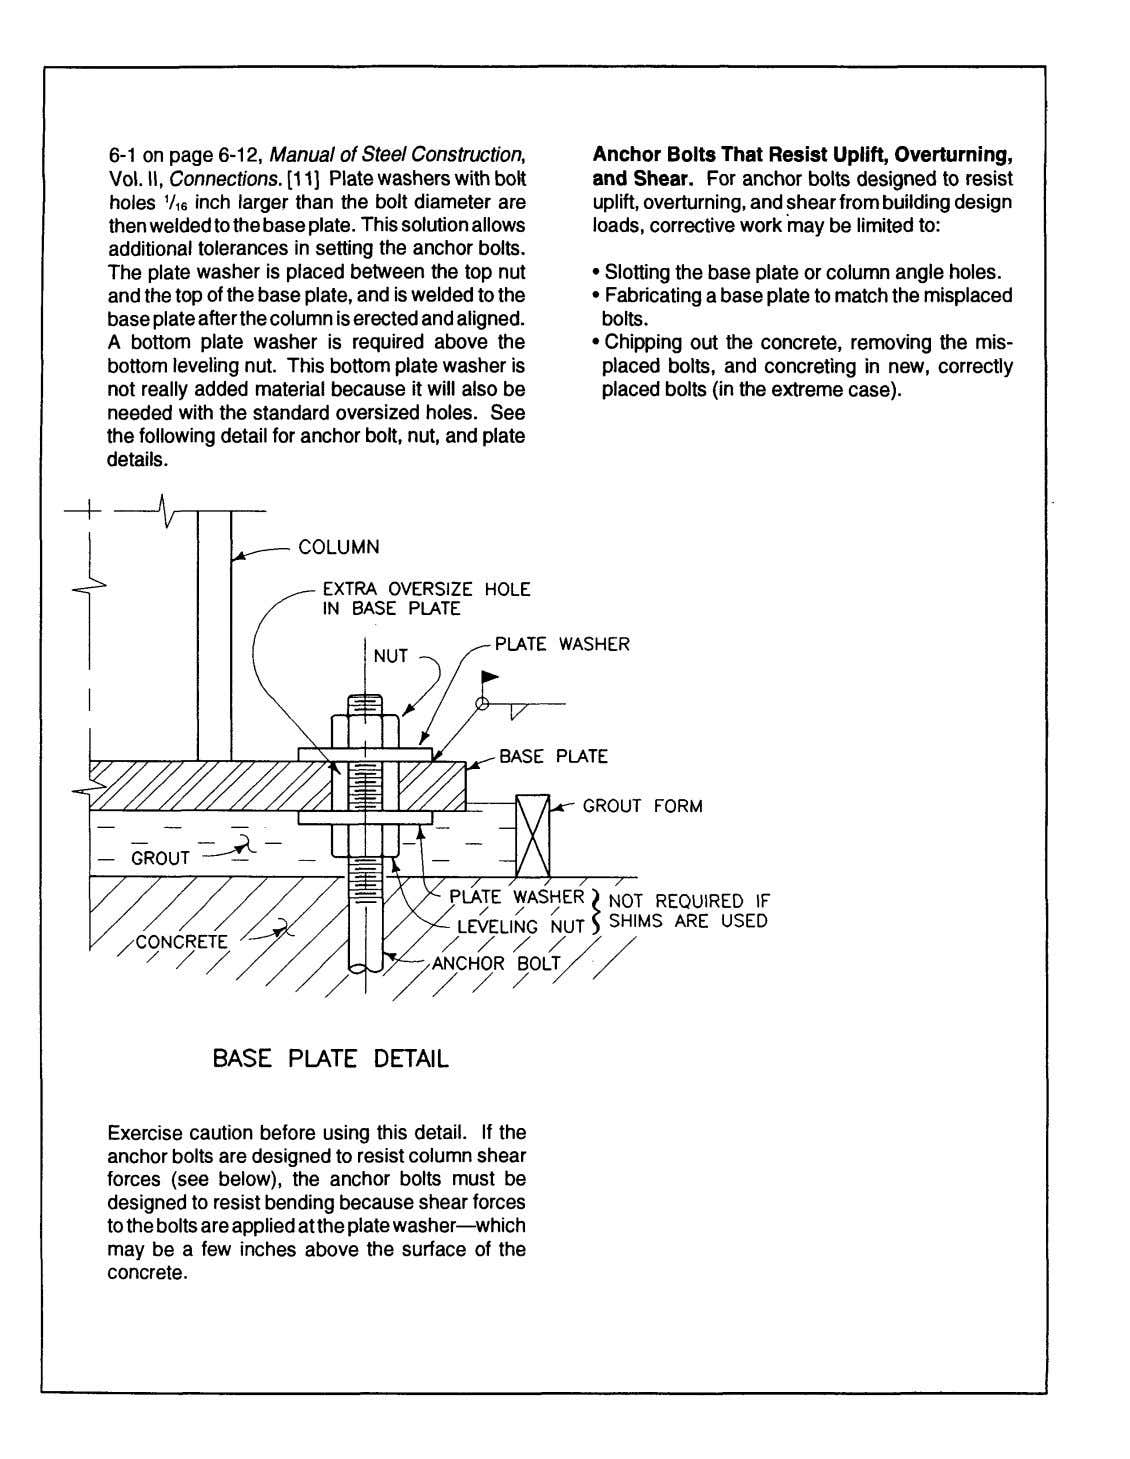 6-1 on page 6-12, Manual of Steel Construction, Anchor Bolts That Resist Uplift, Overturning, VoL